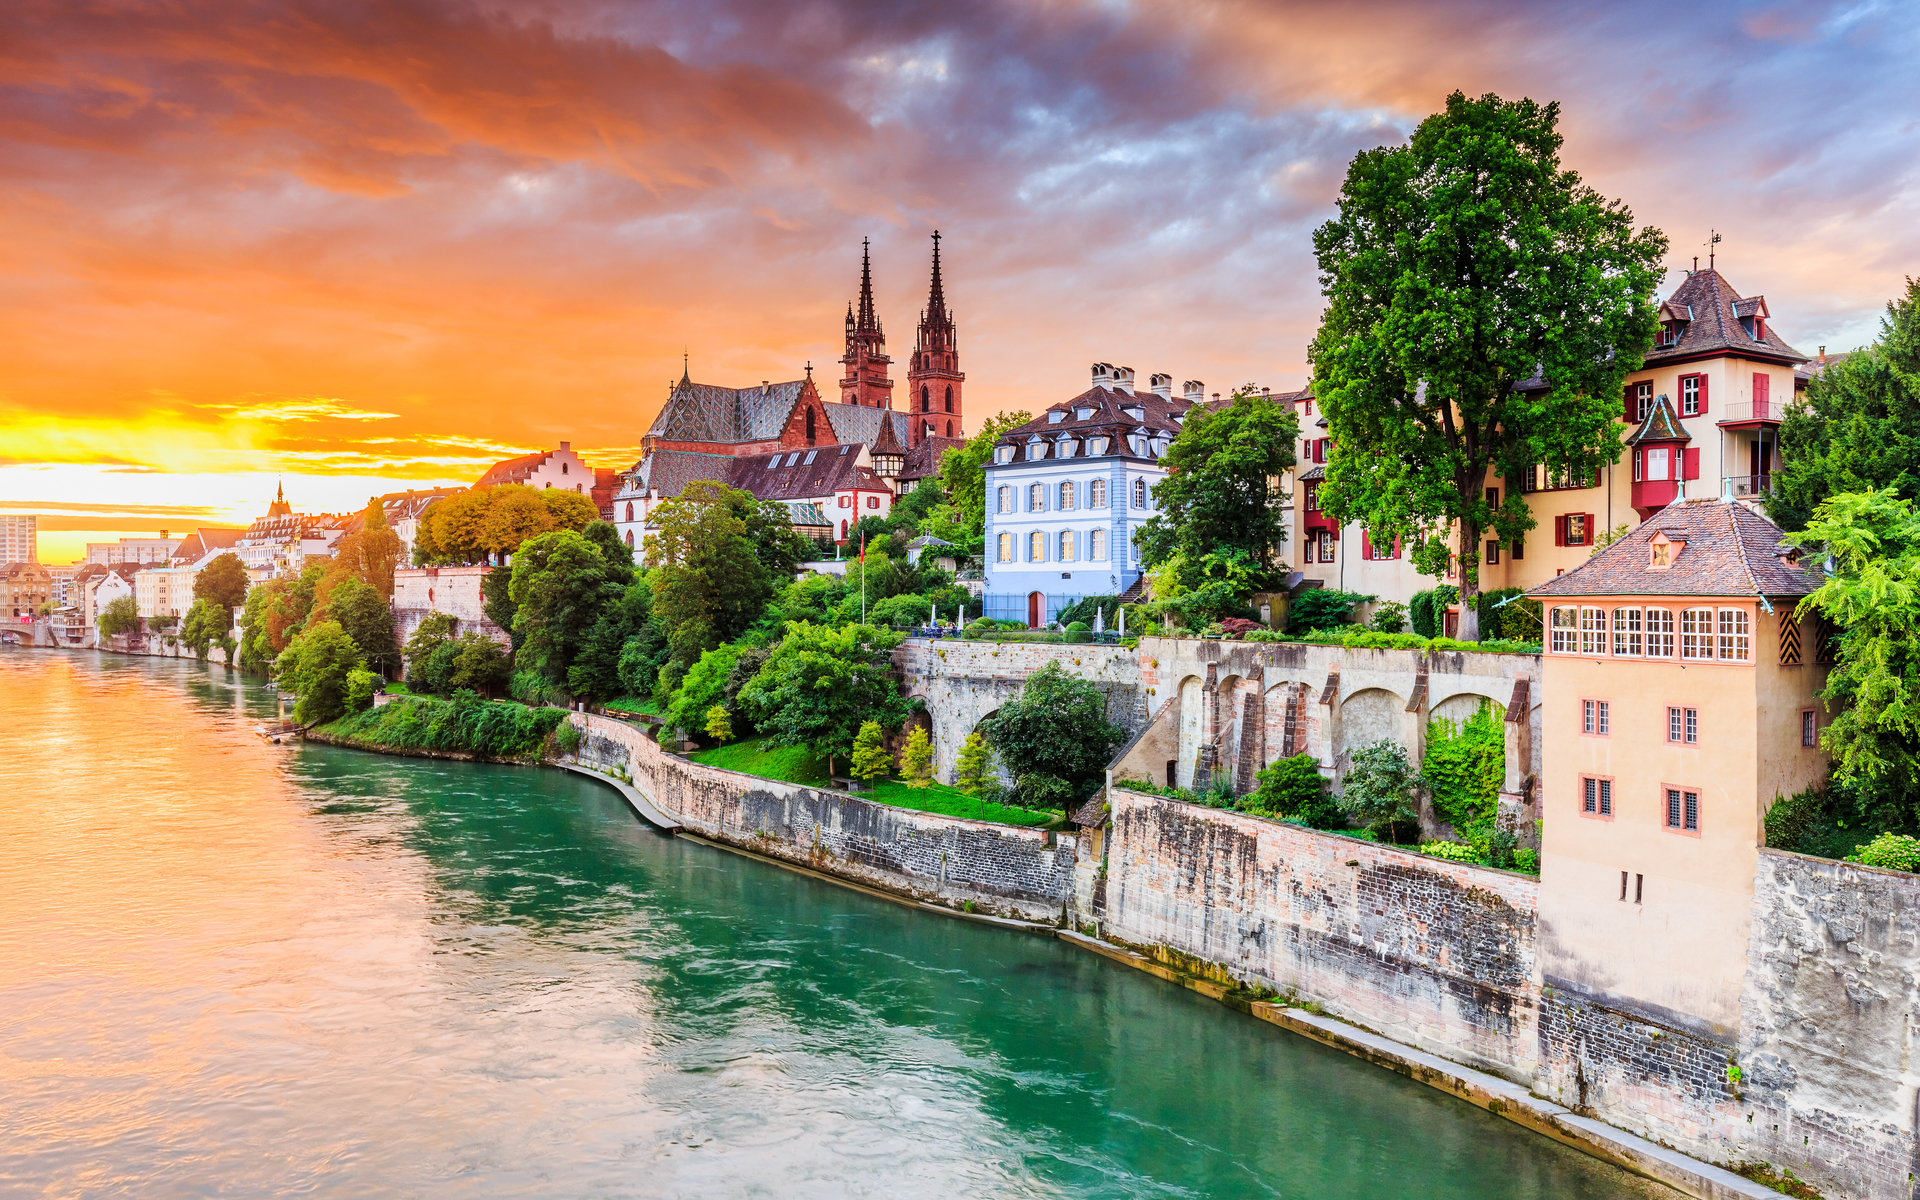 Basel to establish global crypto standard